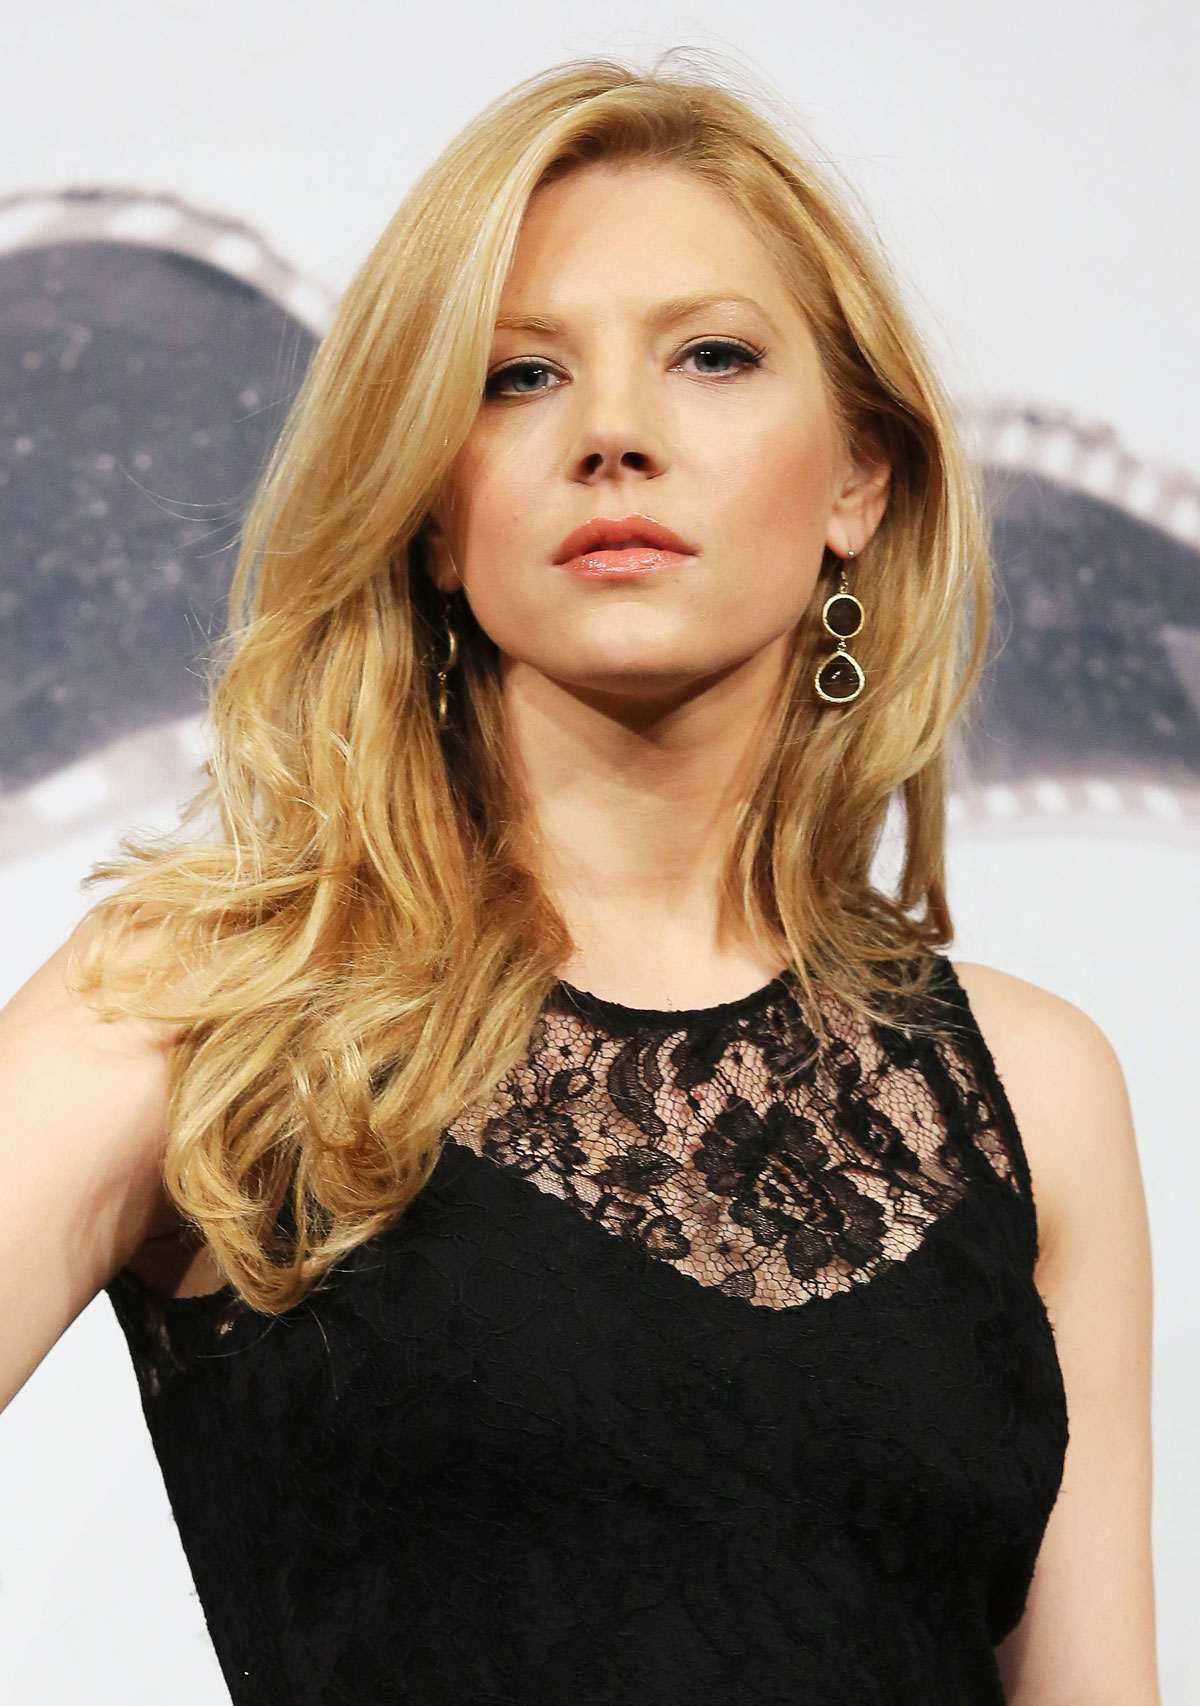 Katheryn Winnick official facebook